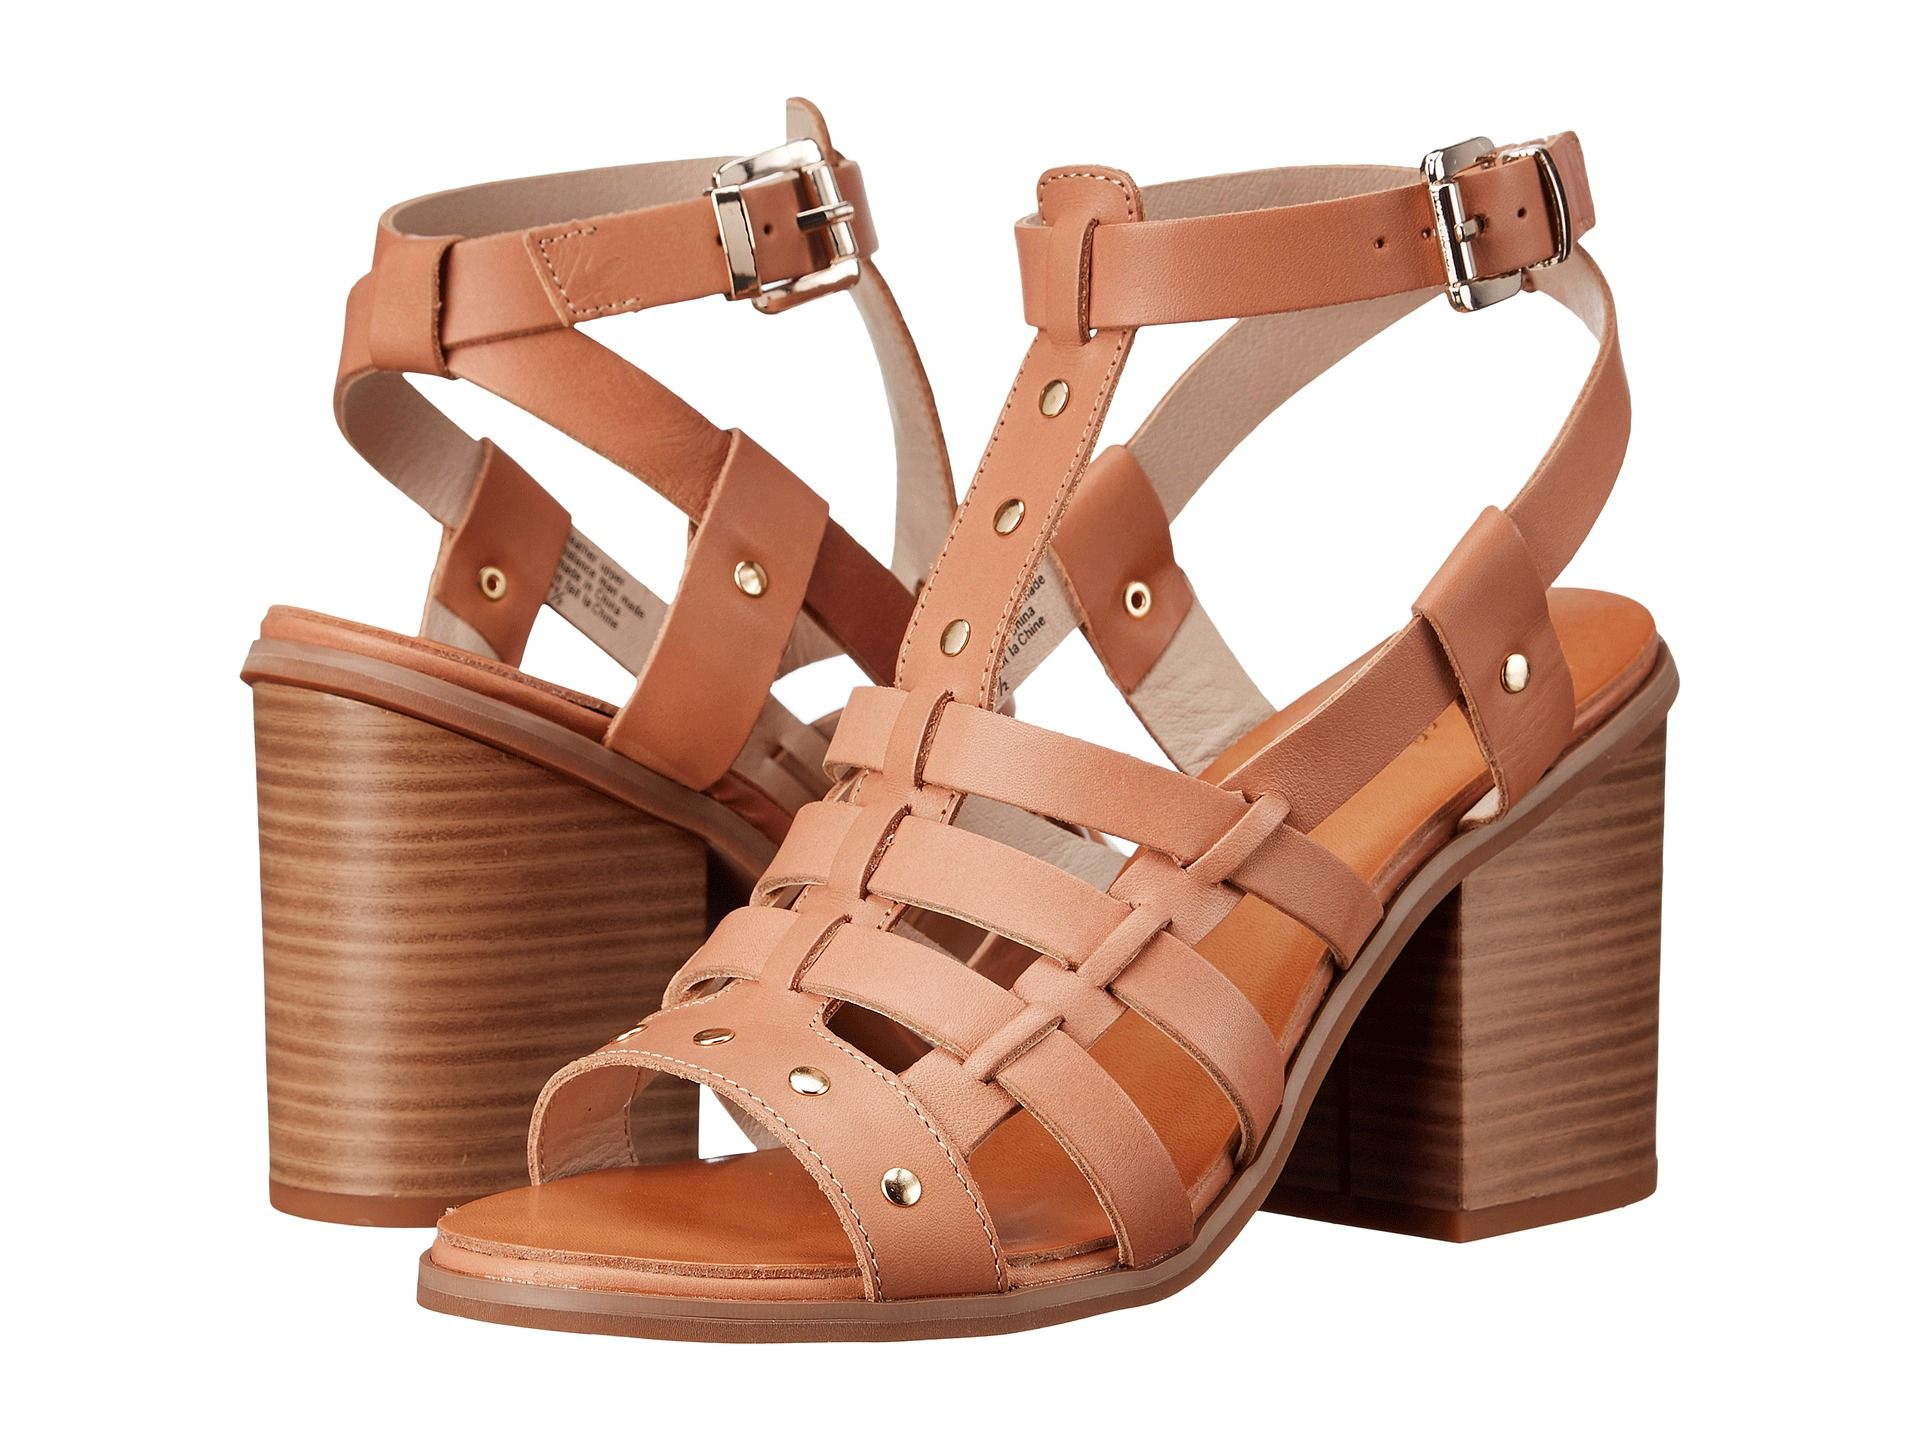 8f2ec596ab7 SEYCHELLES Scout it Out Gladiator Heels from Stitch Fix. https   www.